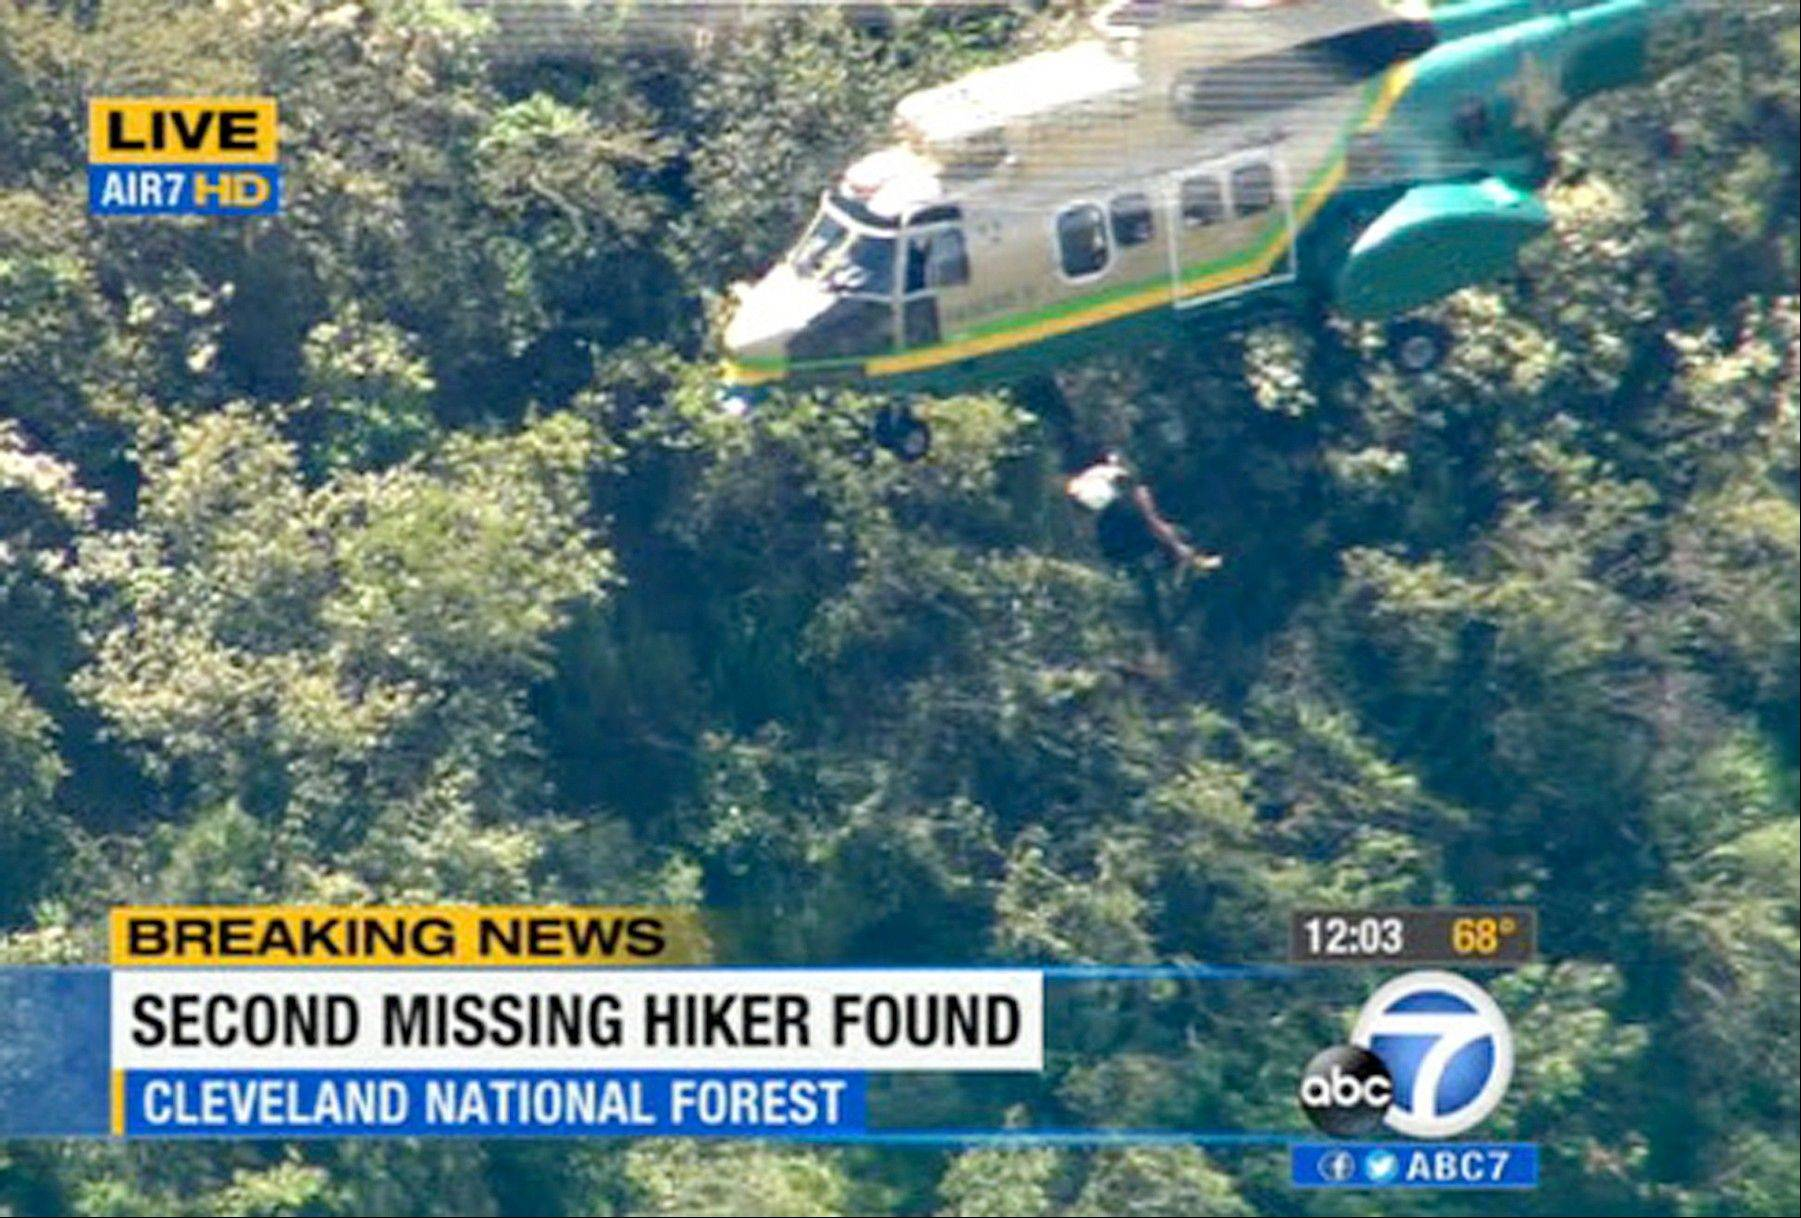 This video image provided by KABC-TV shows the air rescue of Kyndall Jack, 18, who was hoisted out of Cleveland National Forest, California, after being missing for four days, Thursday April 4, 2013. Her hiking companion, Nicolas Cendoya, 19, was discovered without shoes by another hiker Wednesday less than a mile from where the pair's car was parked.